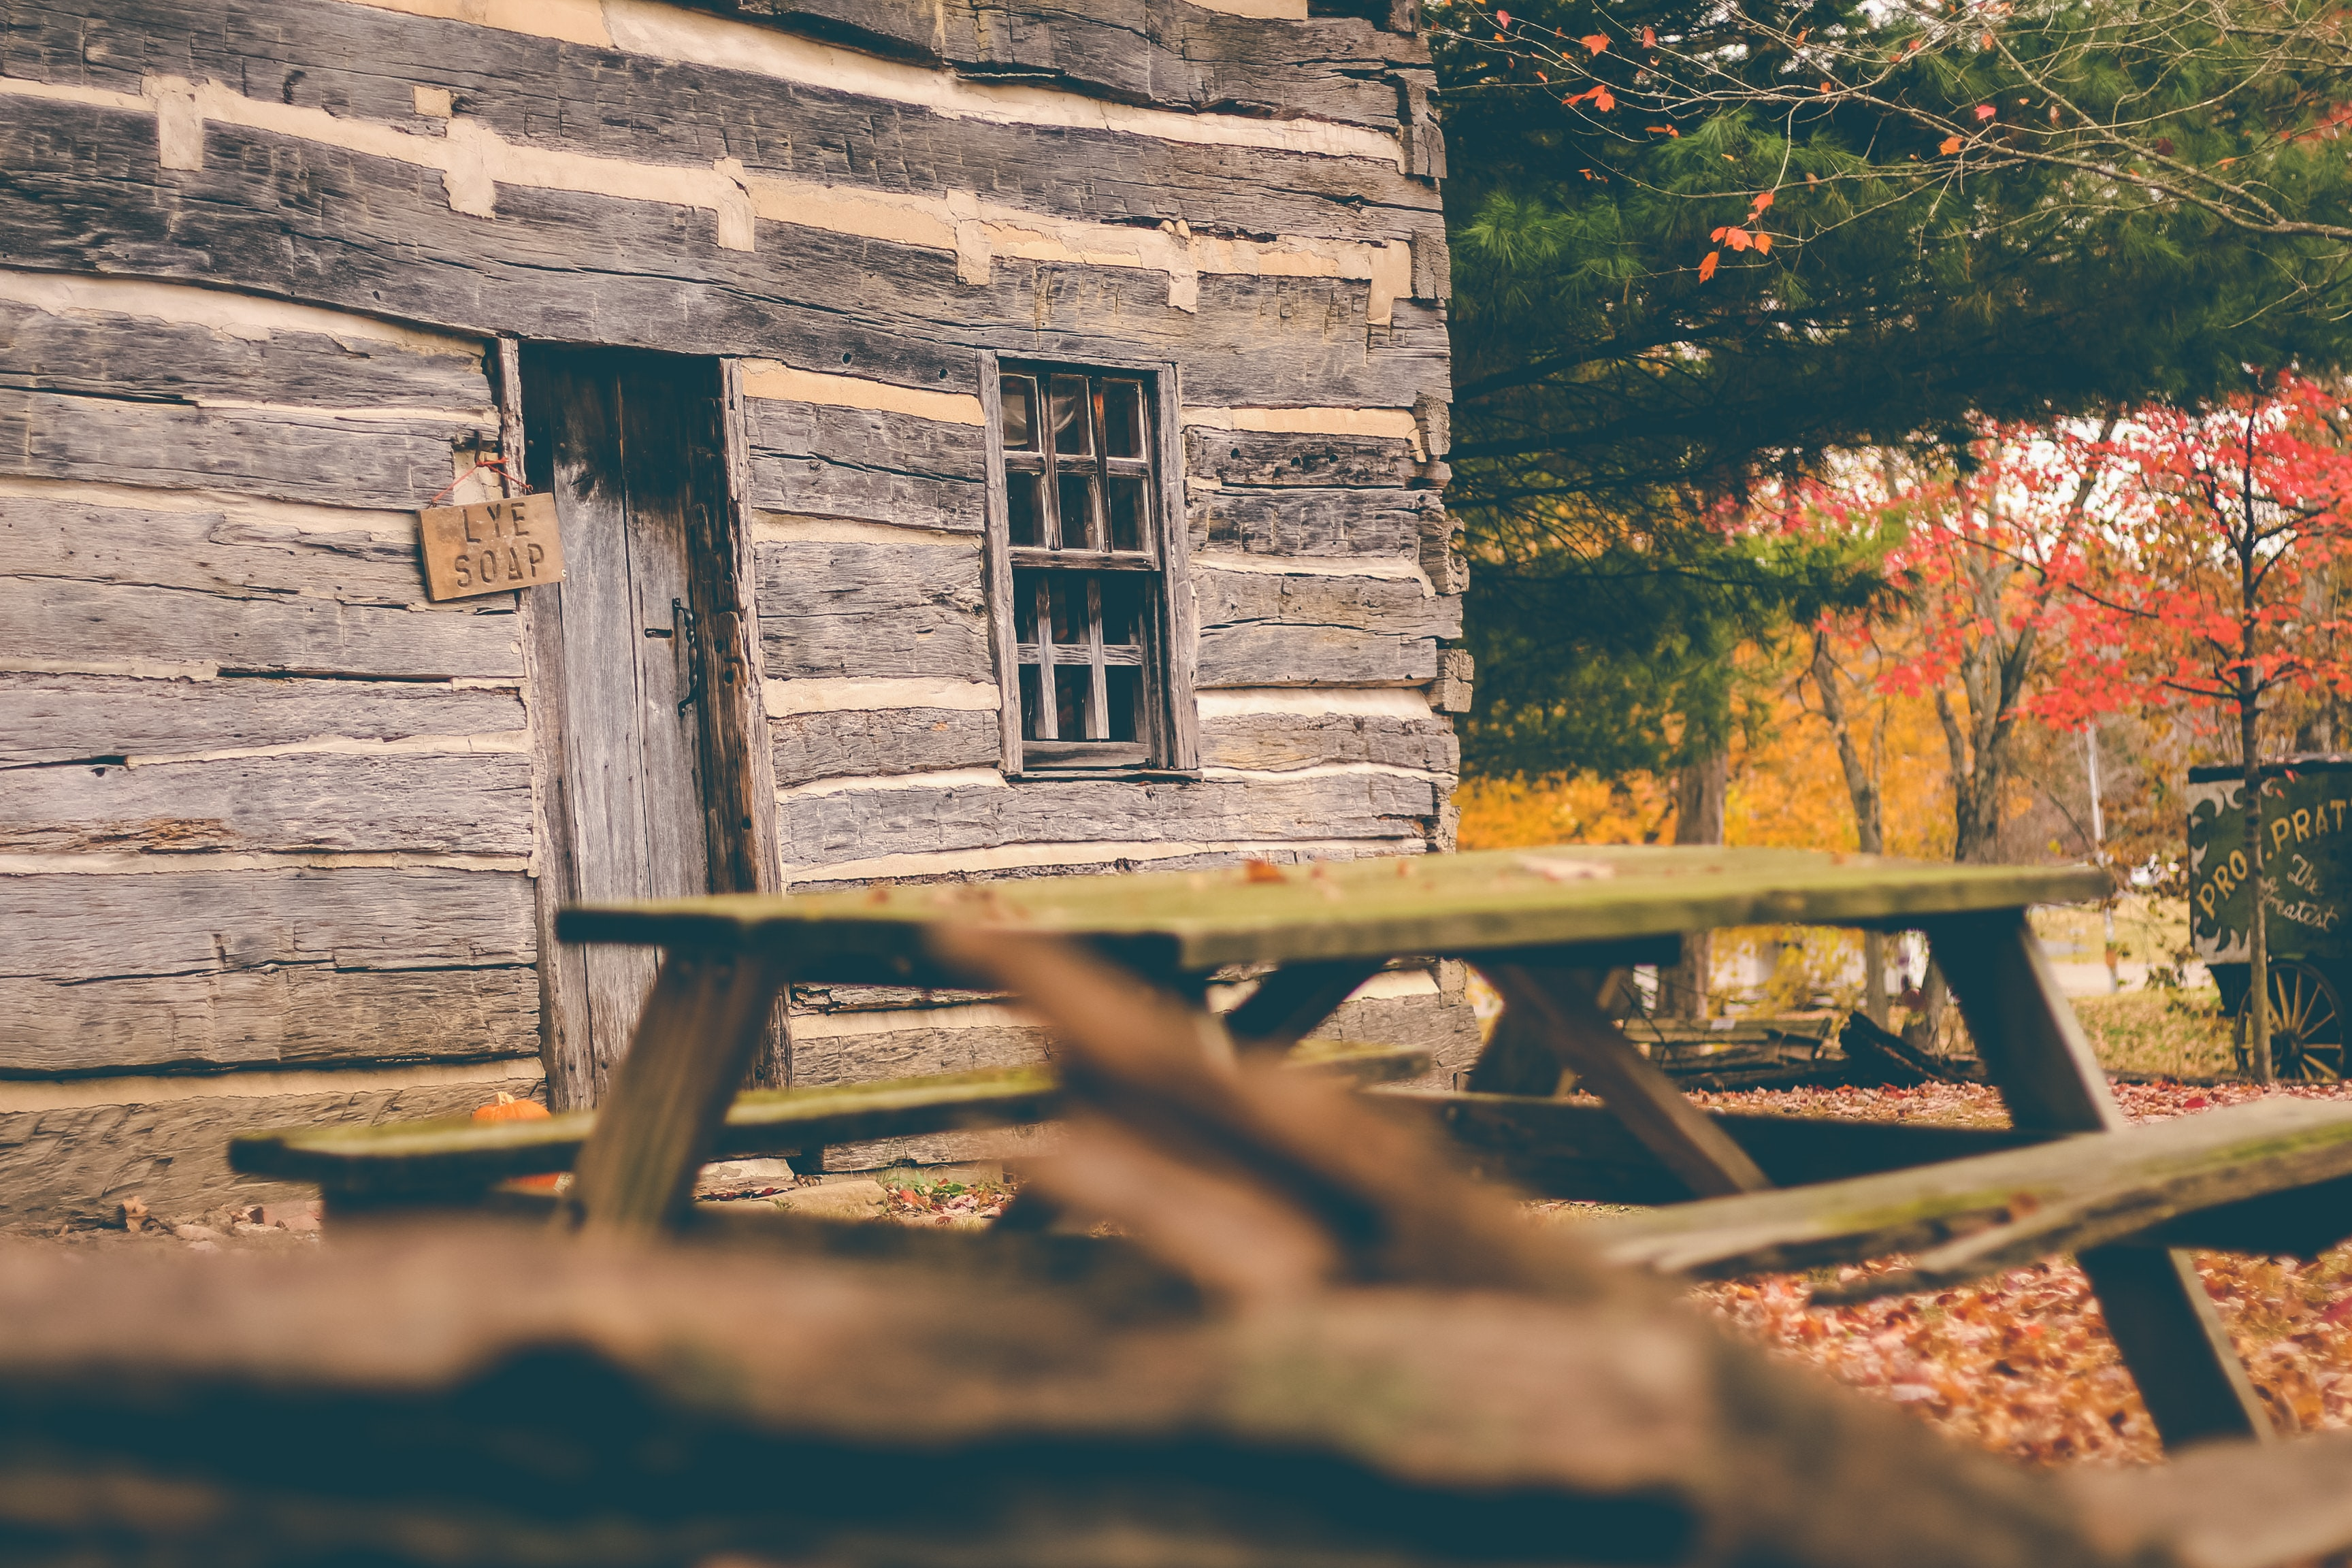 picnic table near wooden house